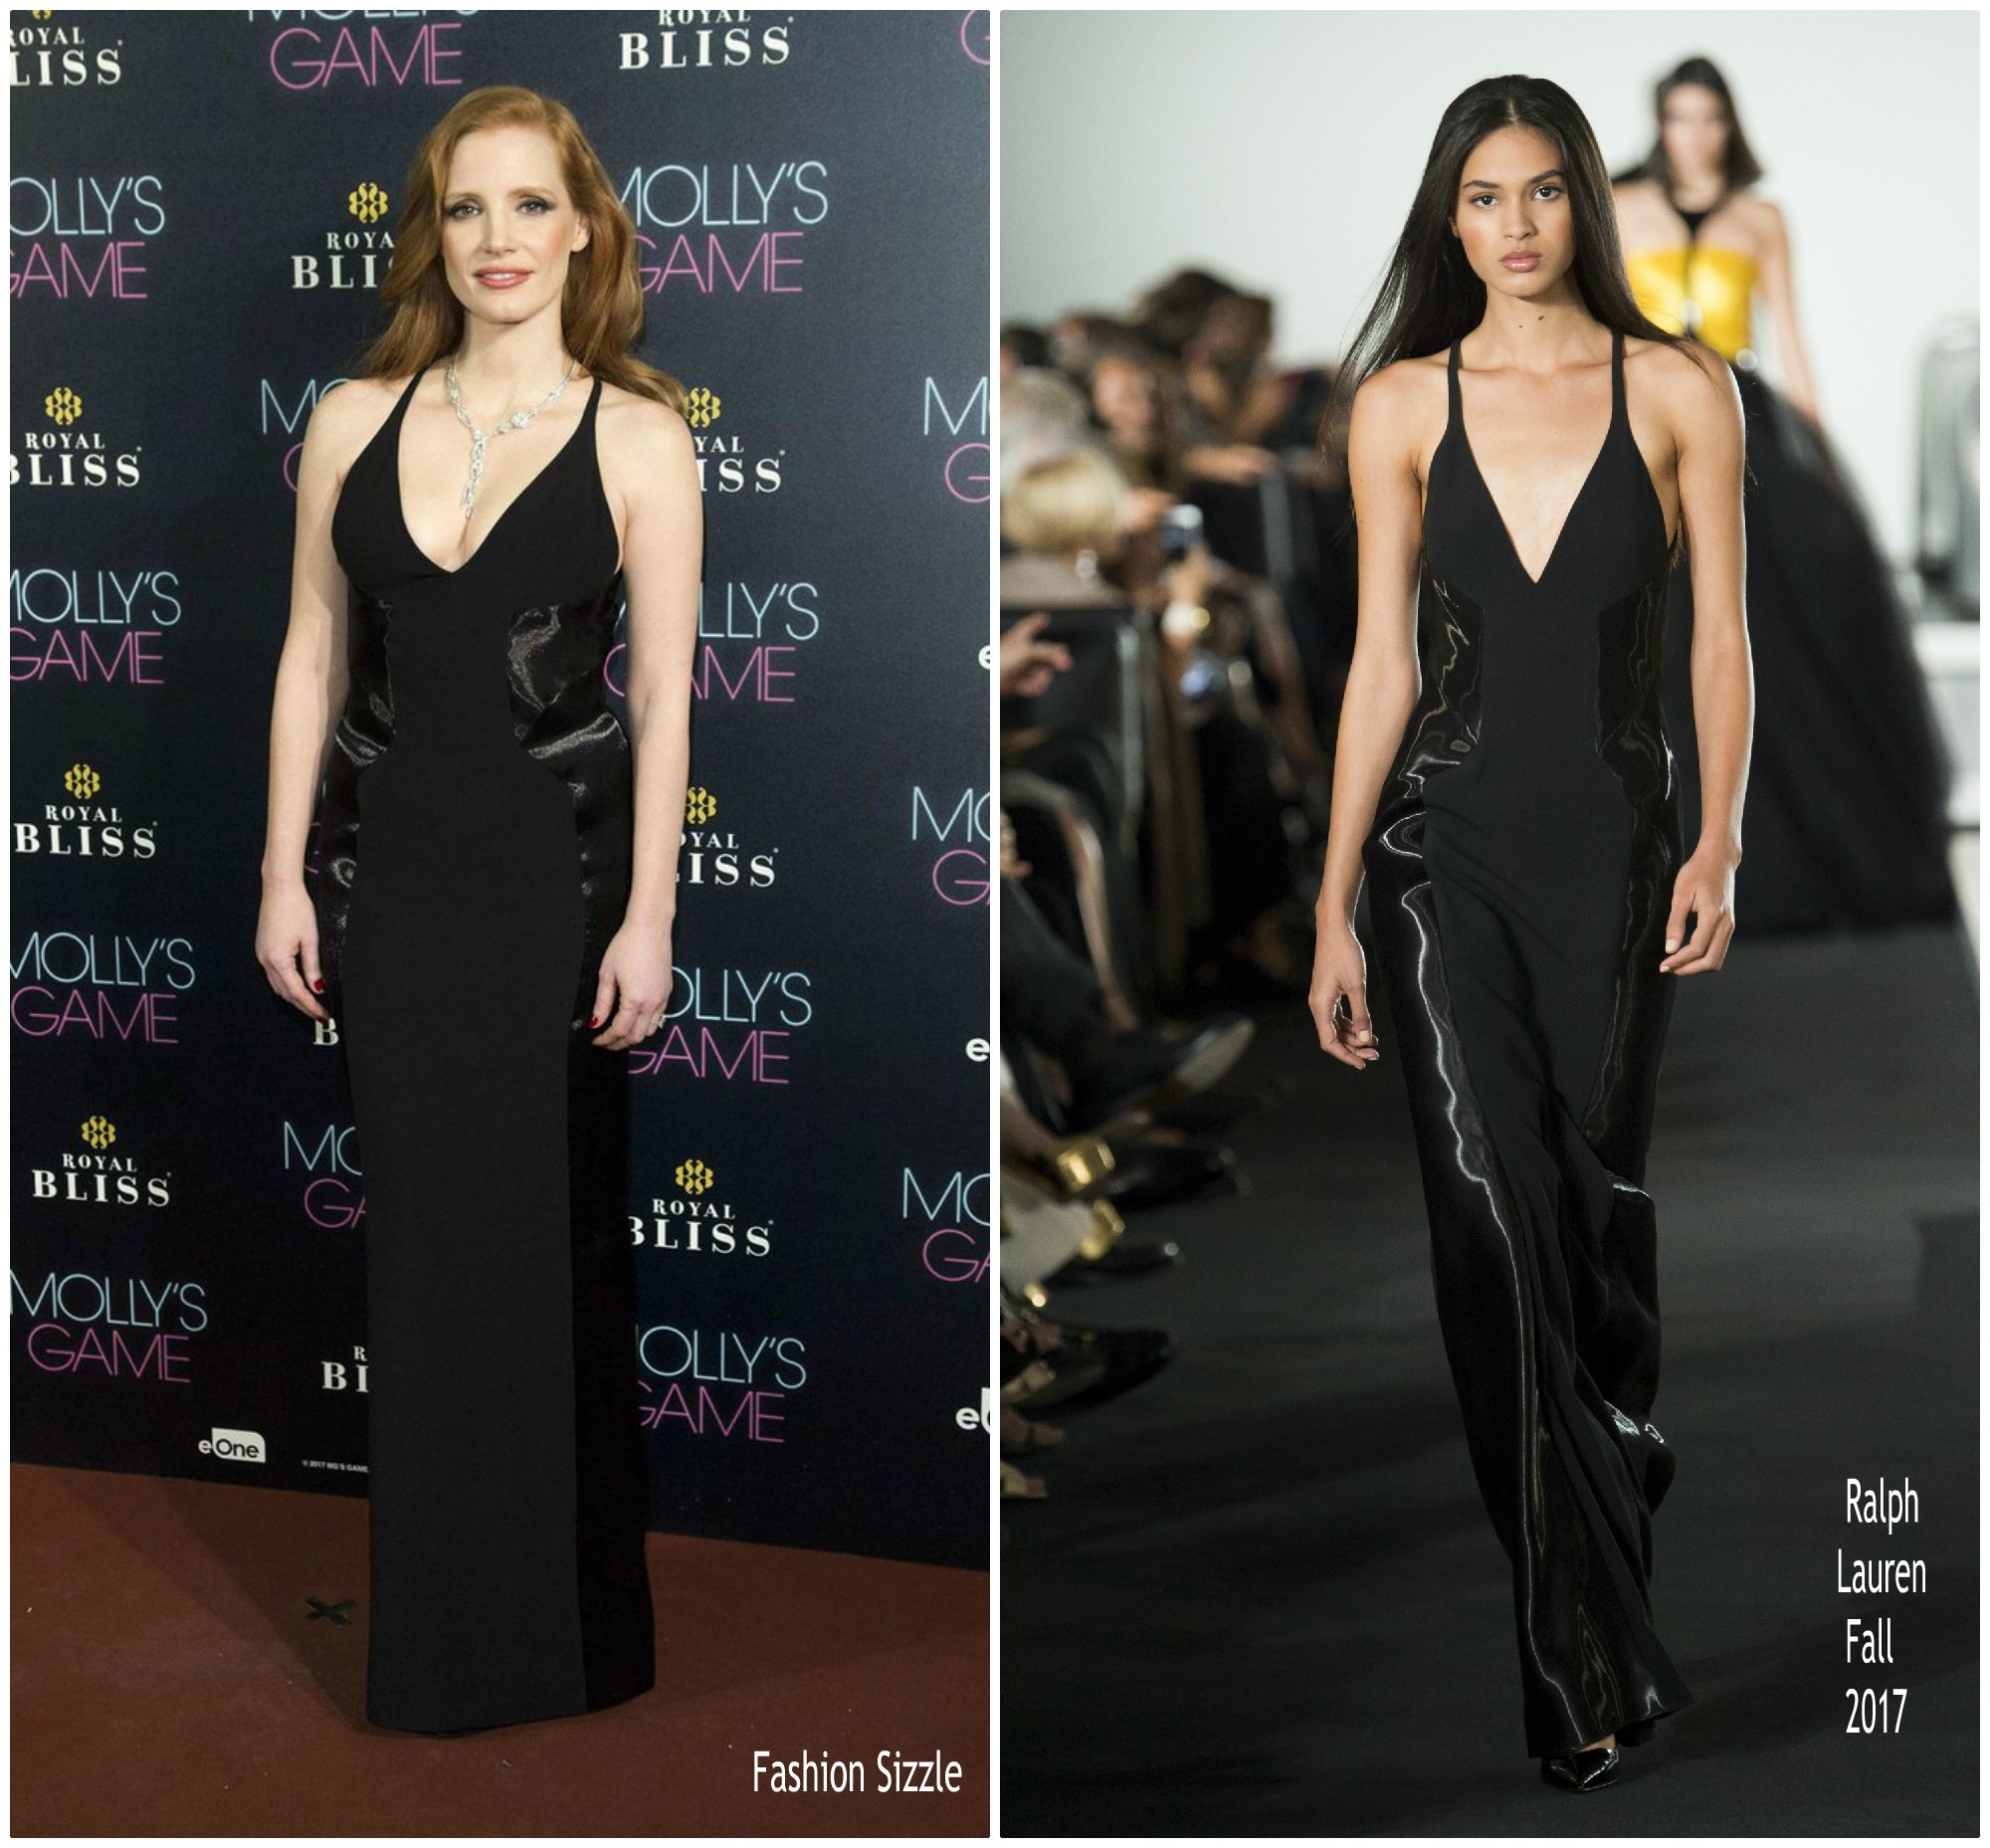 jessica-chastain-in-ralph-lauren-mollys-game-madrid-premiere